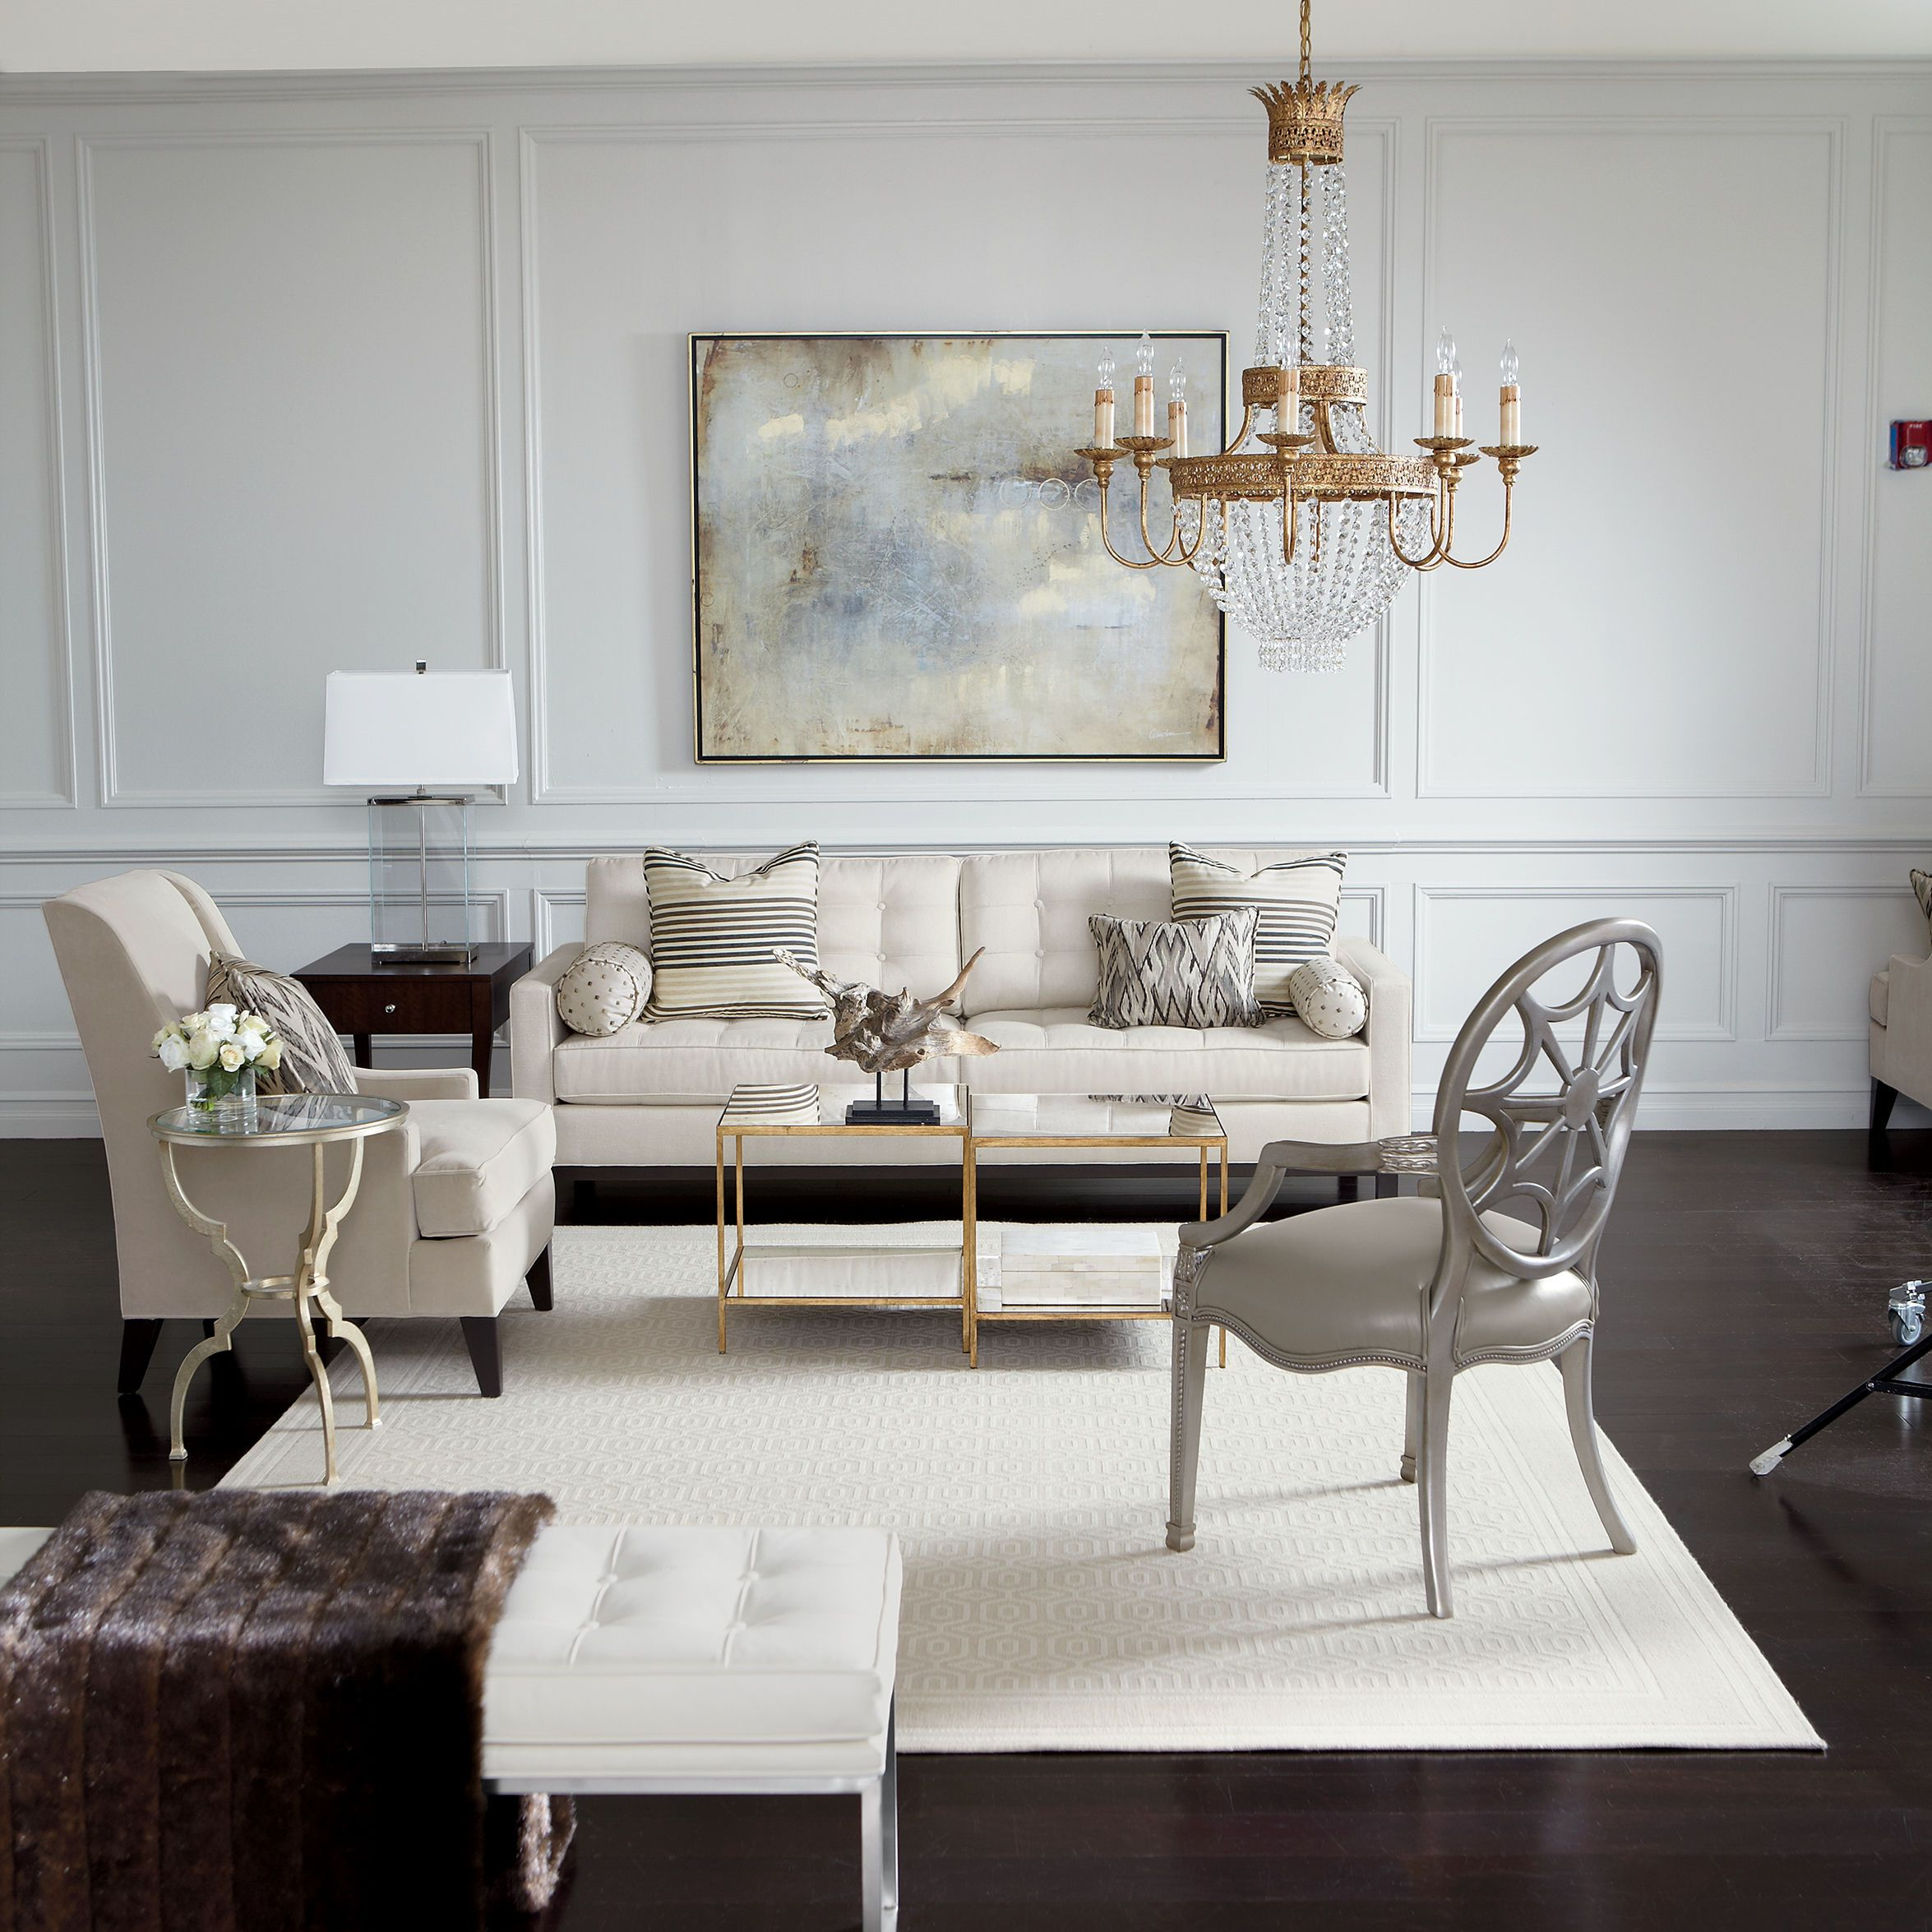 Ethan Allen Living Rooms. From our Elegance lifestyle. Notice the ...